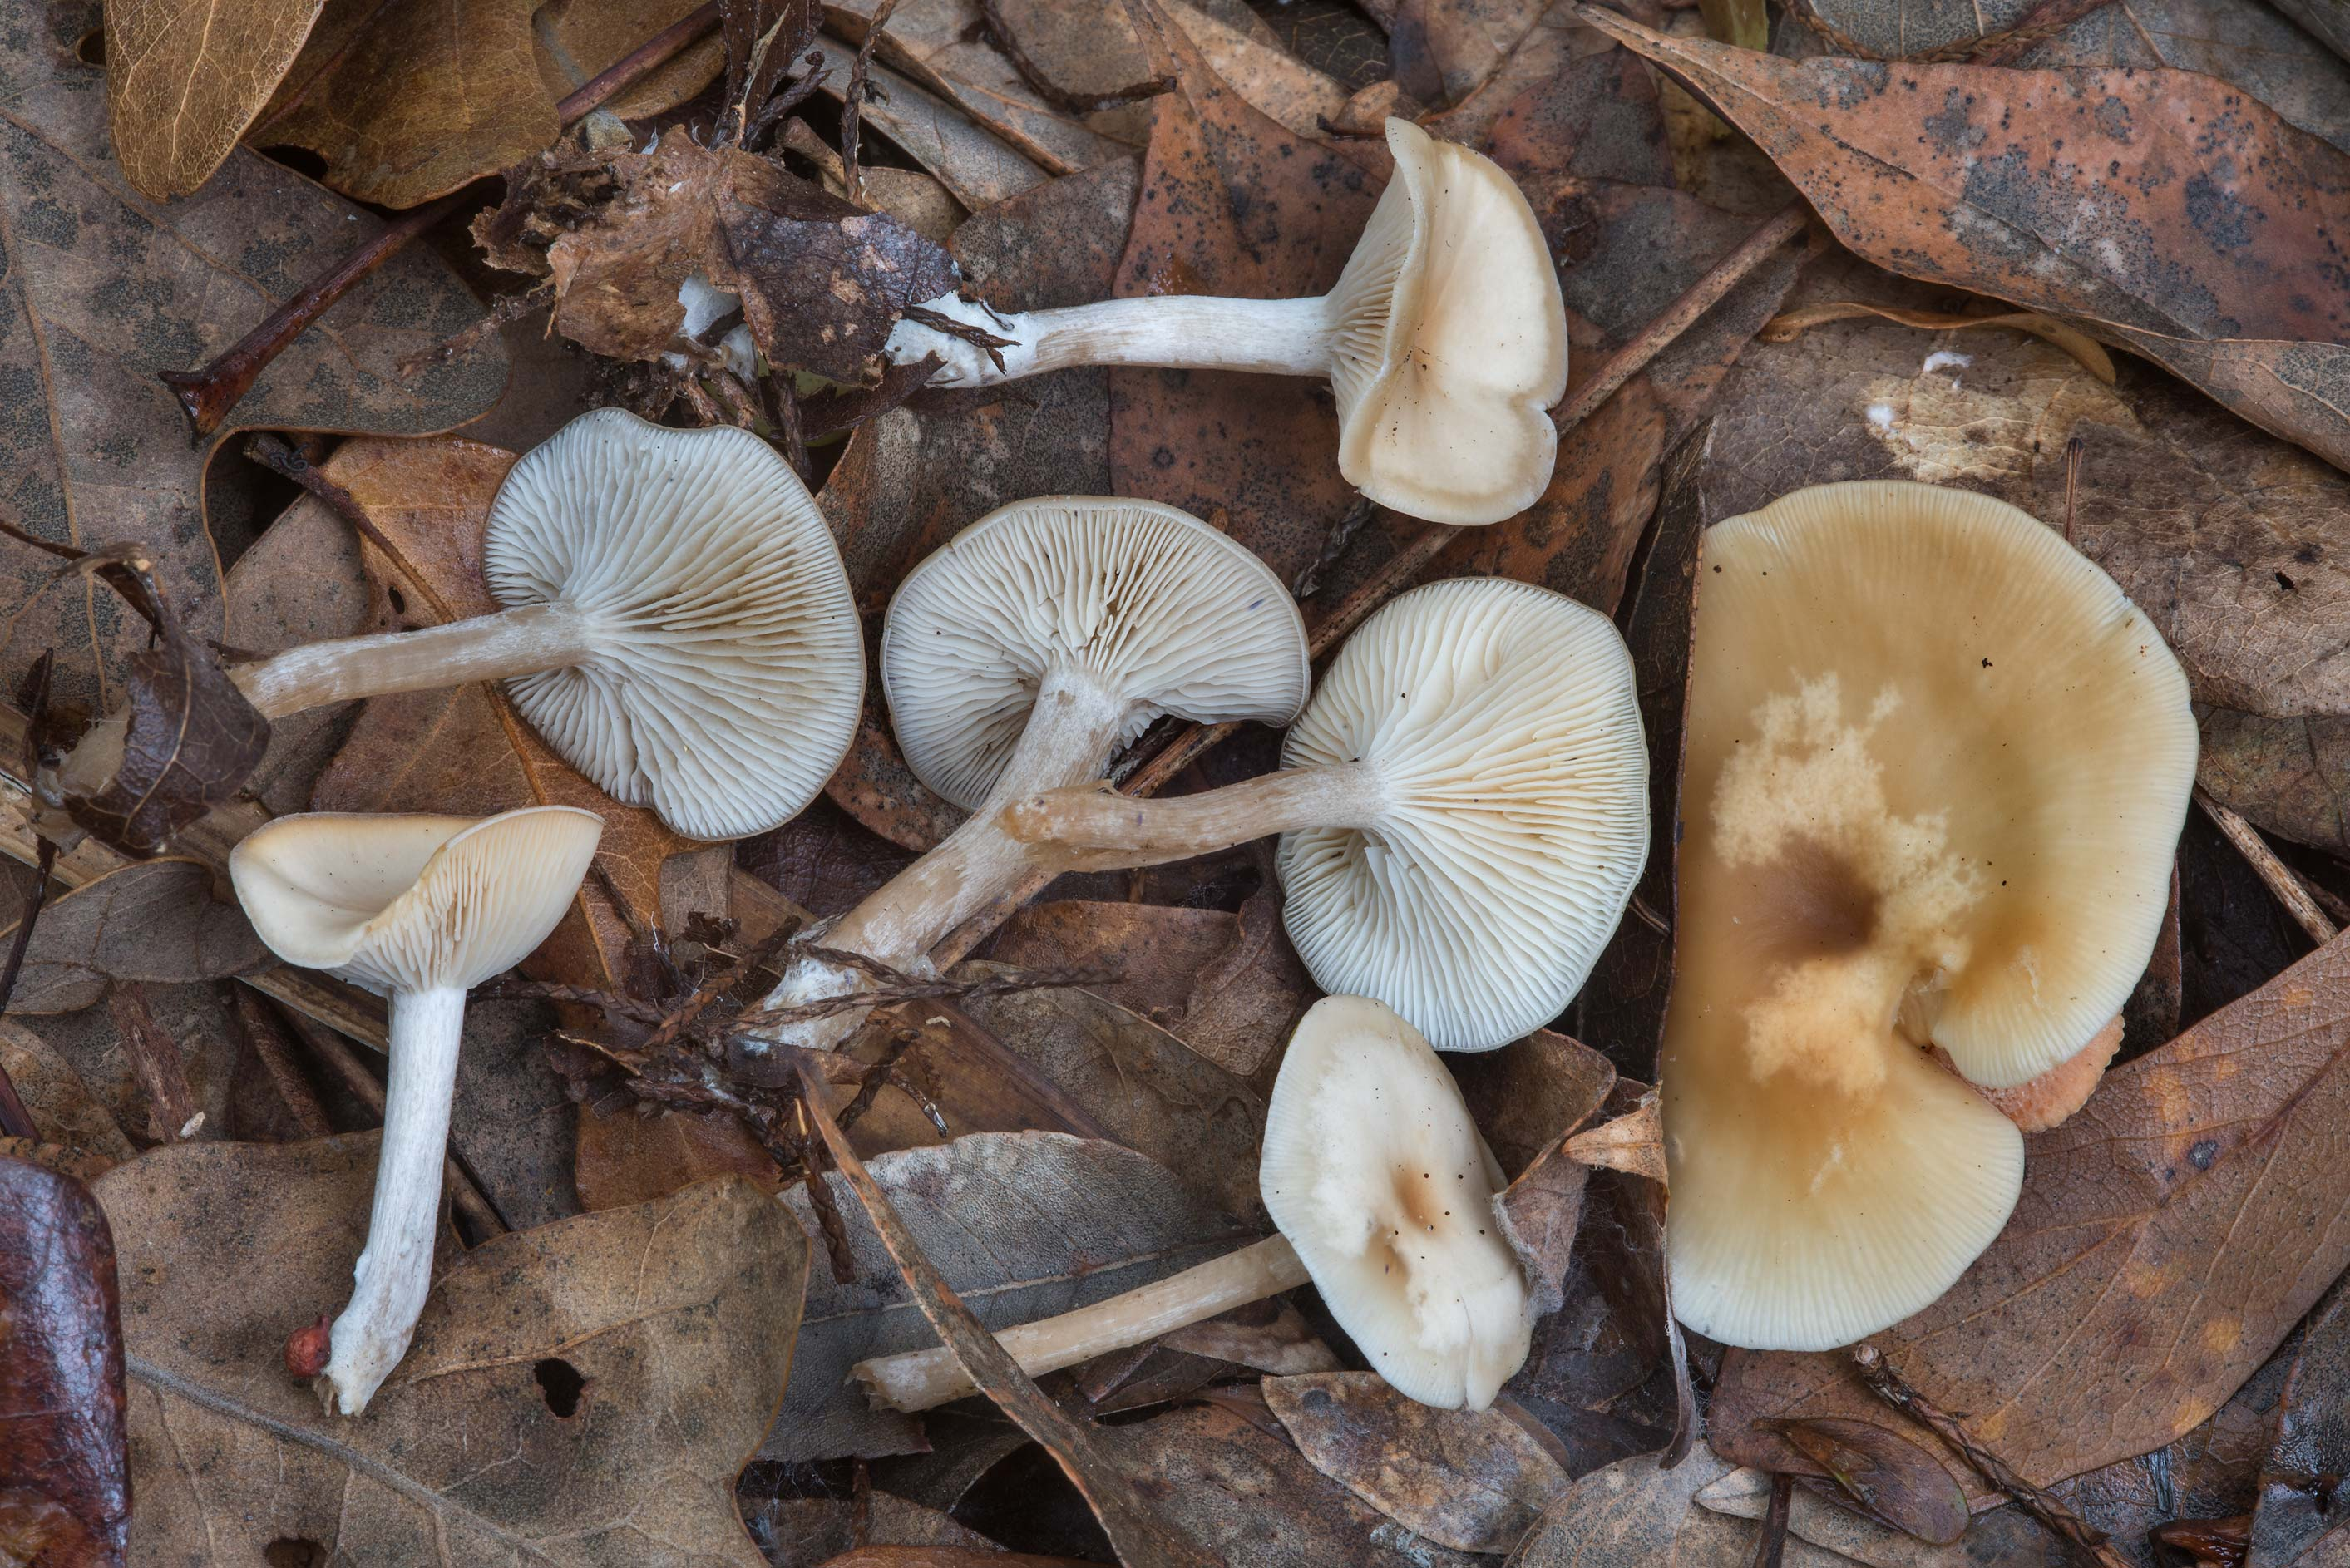 Funnel mushrooms (Clitocybe) in Hensel Park. College Station, Texas